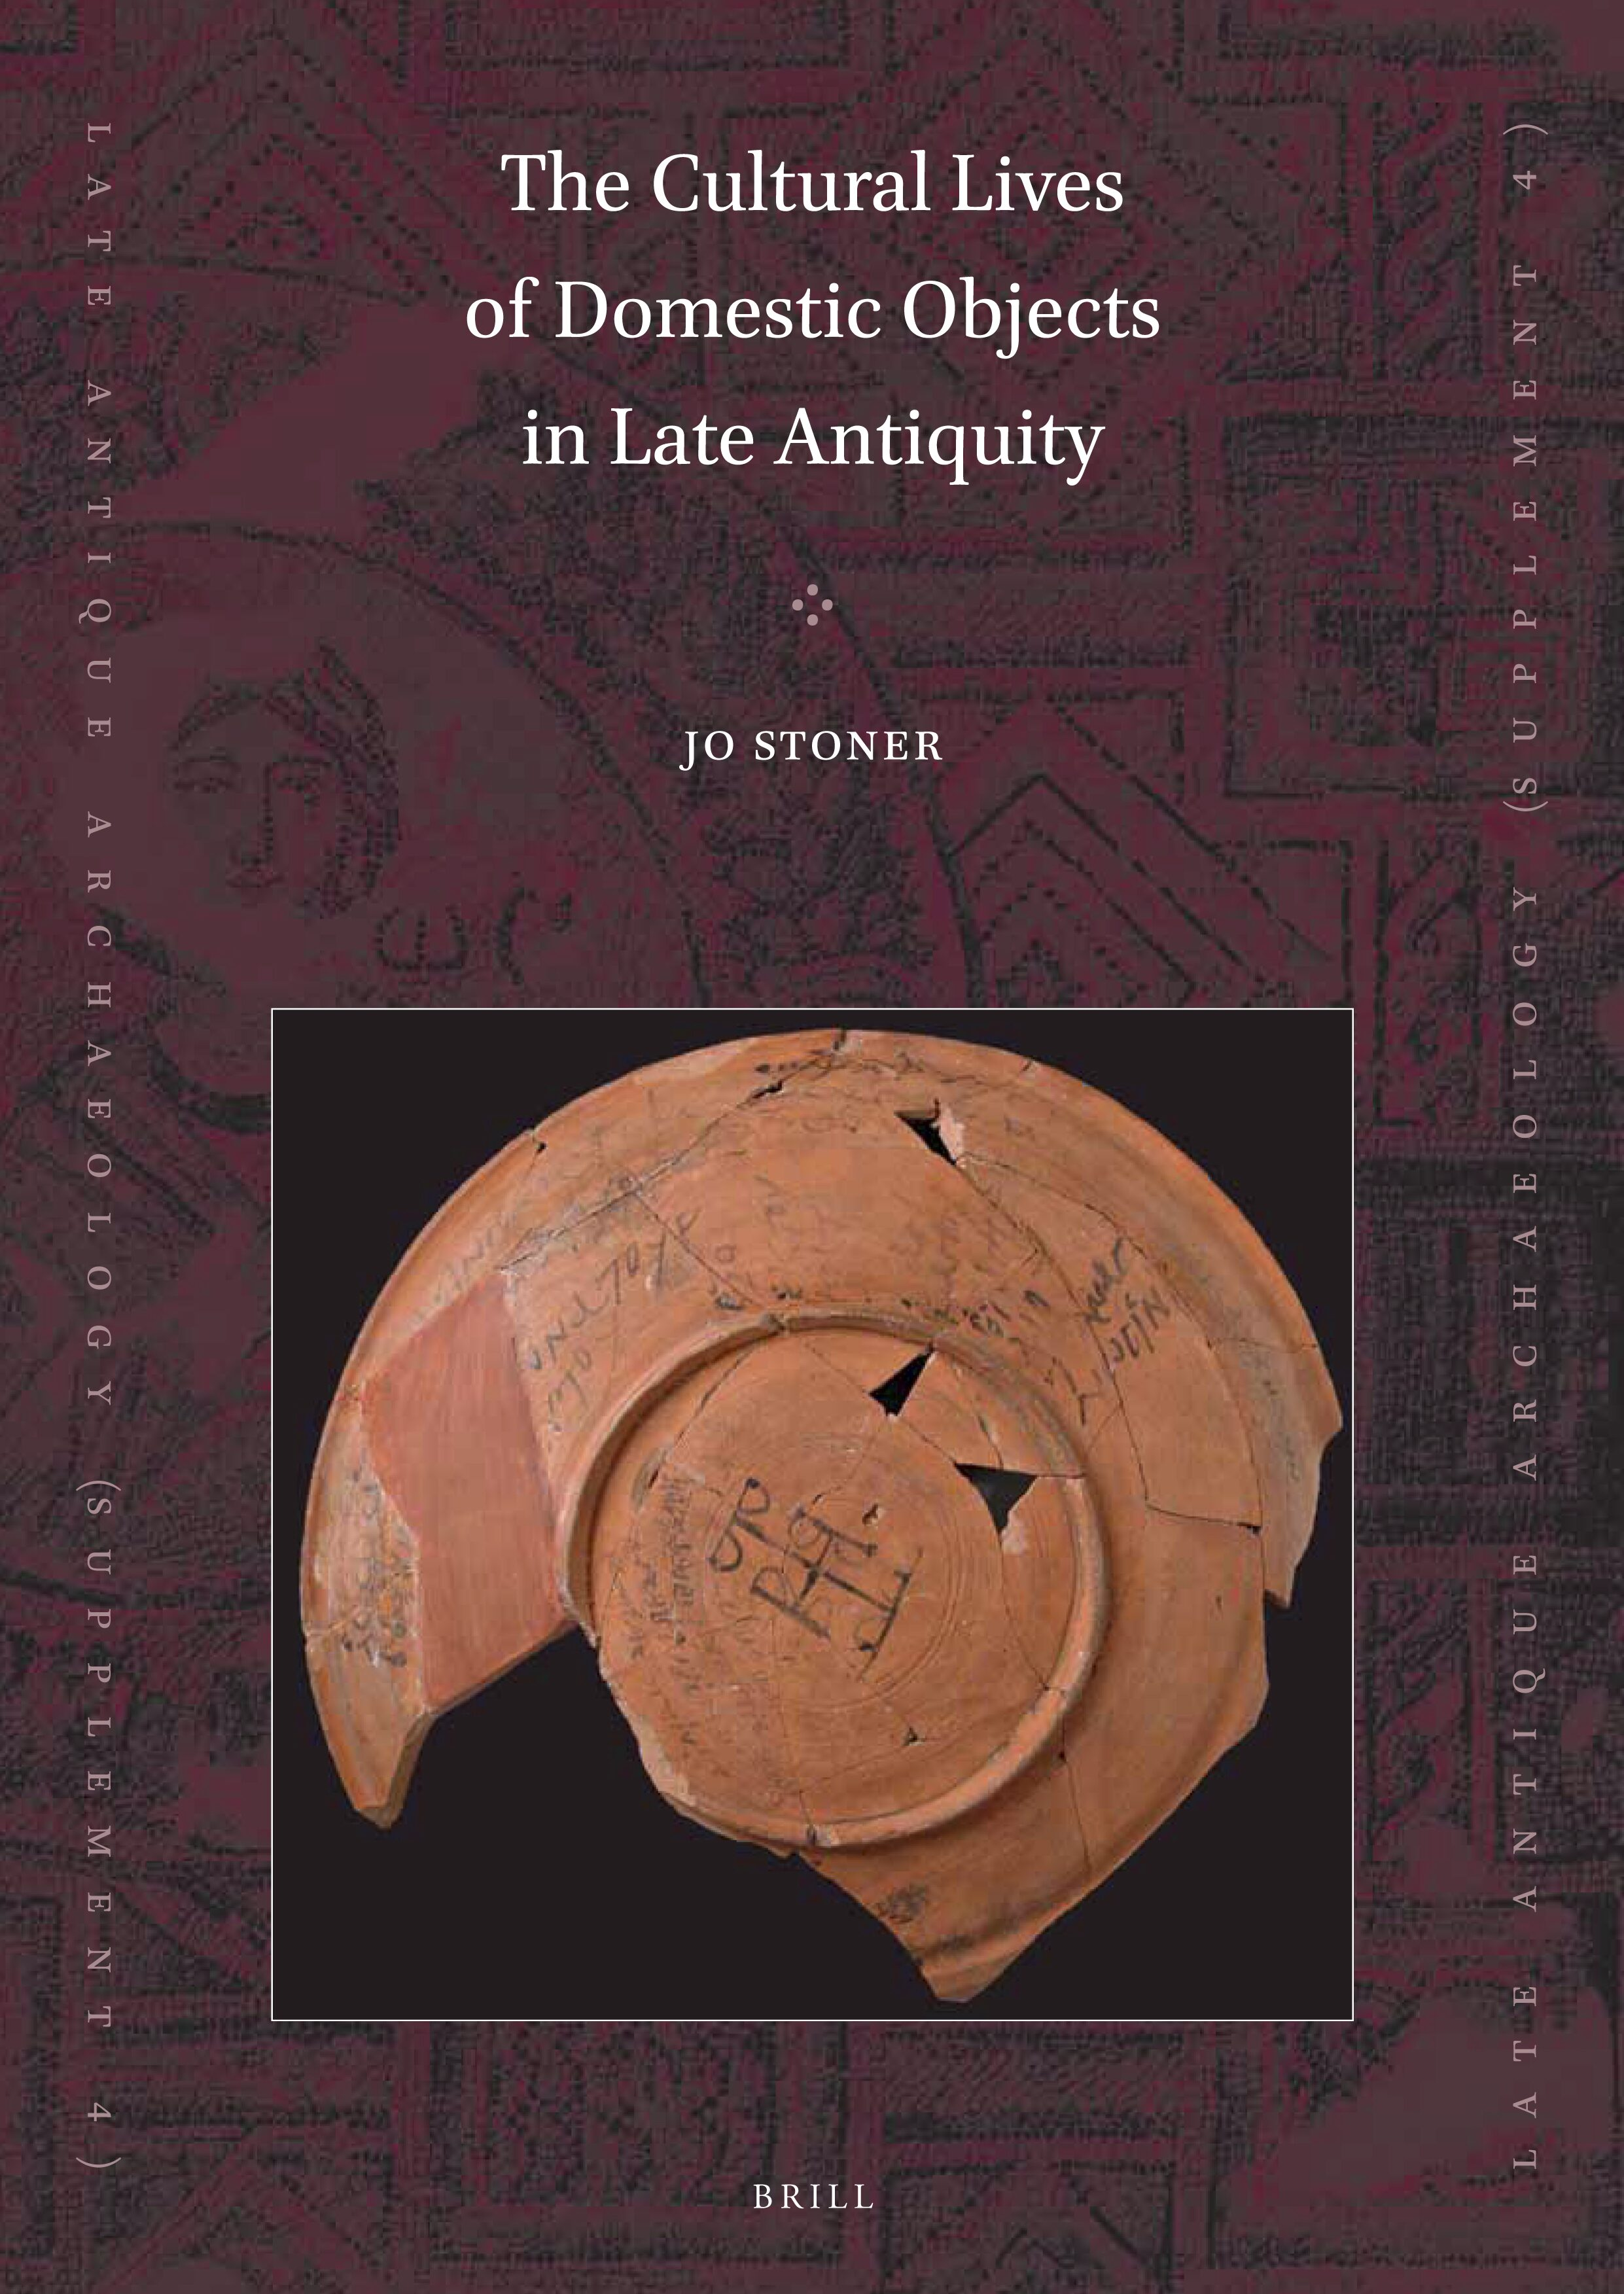 Gifts In Late Antiquity In The Cultural Lives Of Domestic